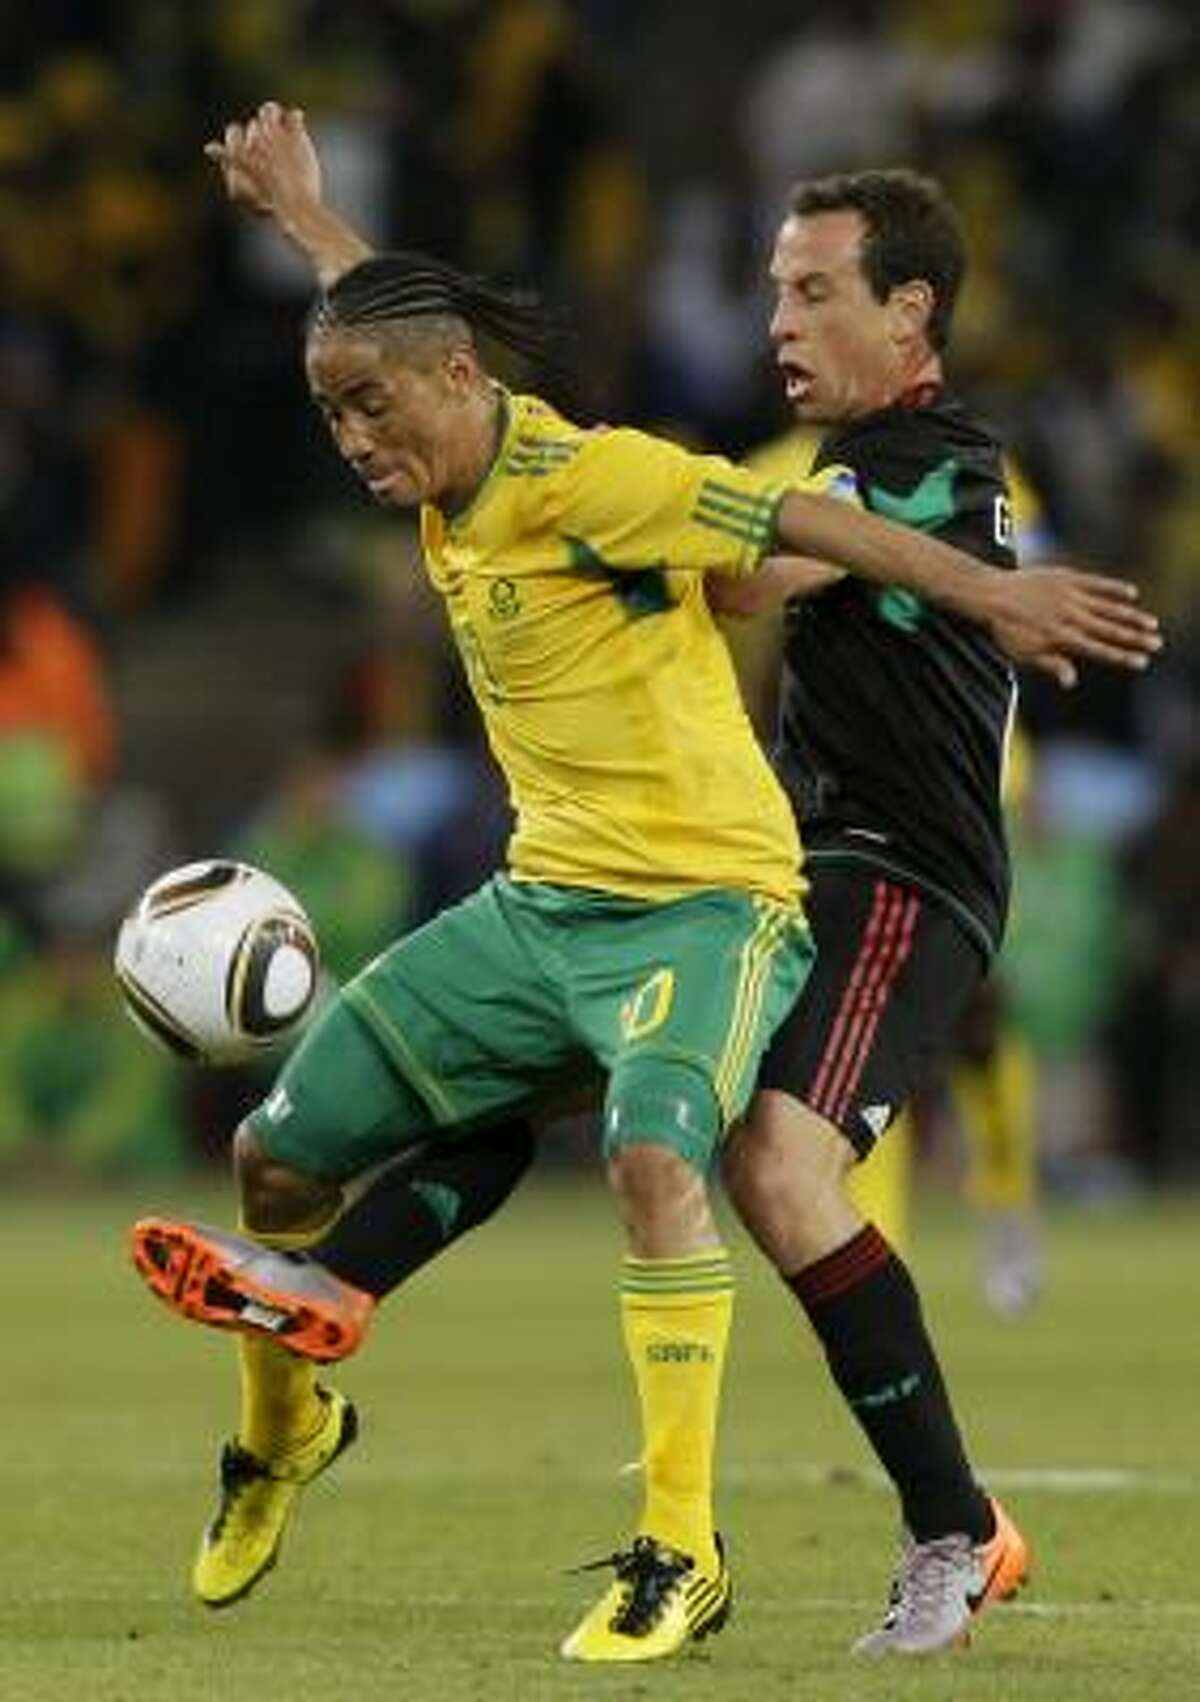 South Africa's Steven Pienaar, left, competes for the ball with Mexico's Gerardo Torrado.